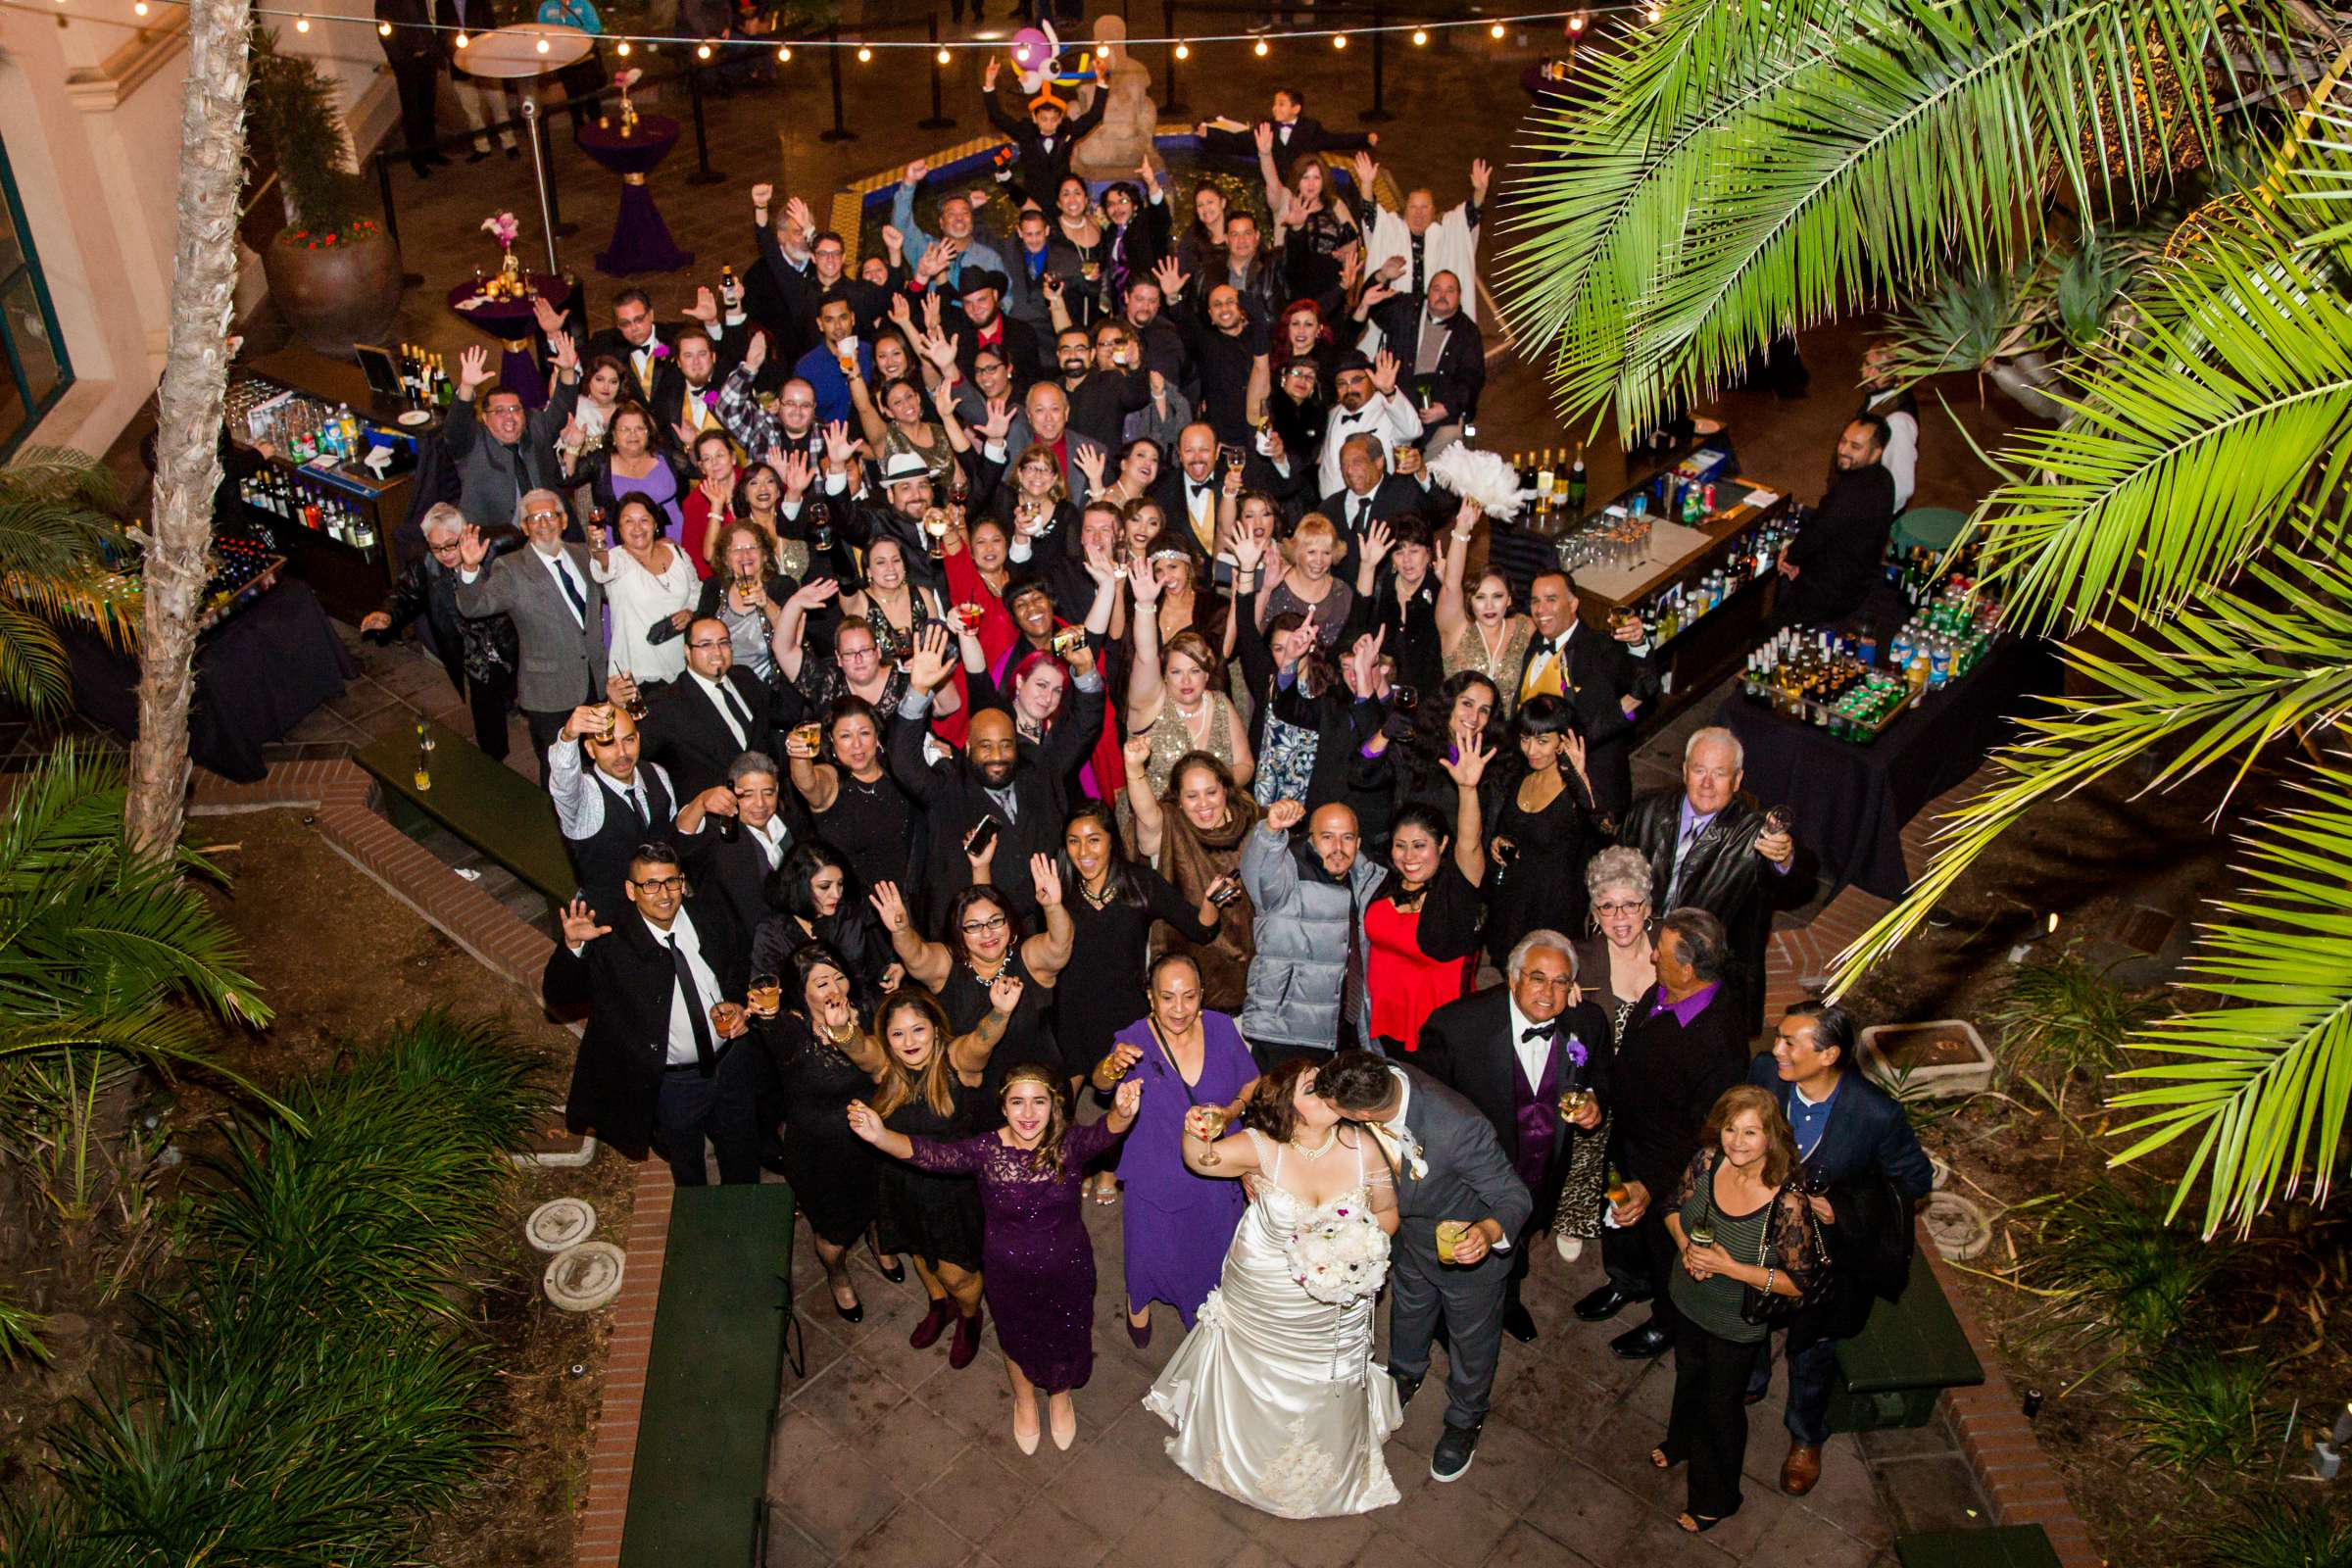 The Prado Wedding coordinated by Breezy Day Weddings, Aalis and Michael Wedding Photo #110 by True Photography